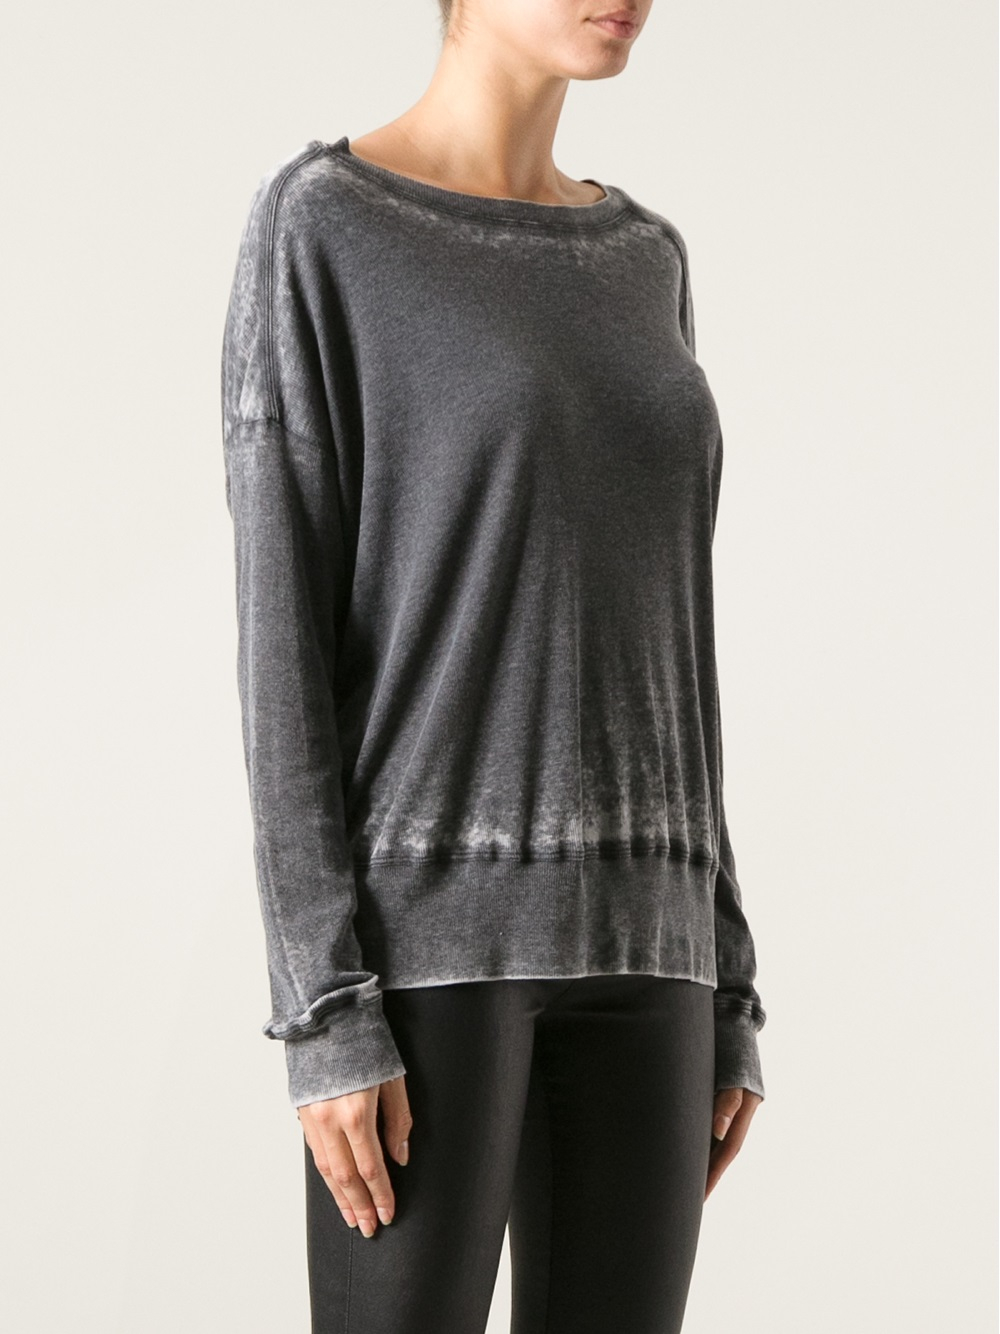 Lyst raquel allegra distressed t shirt in gray for How to make a distressed shirt